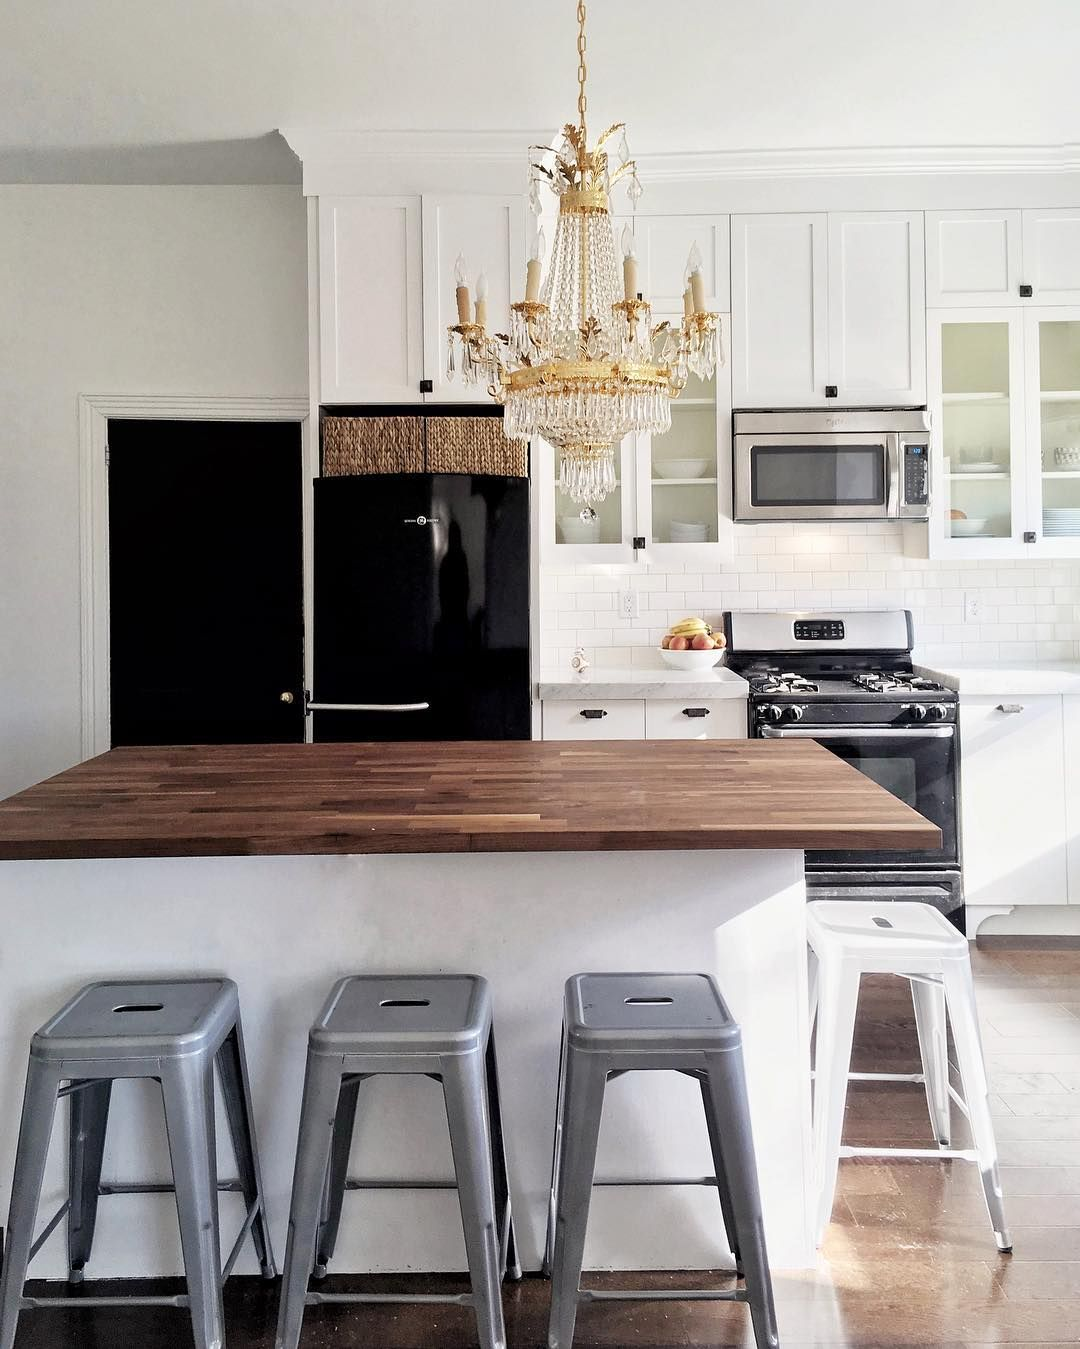 Black Kitchen Cabinets White Tile: White Cabinet, Black Appliances, Wooden Countertops, White